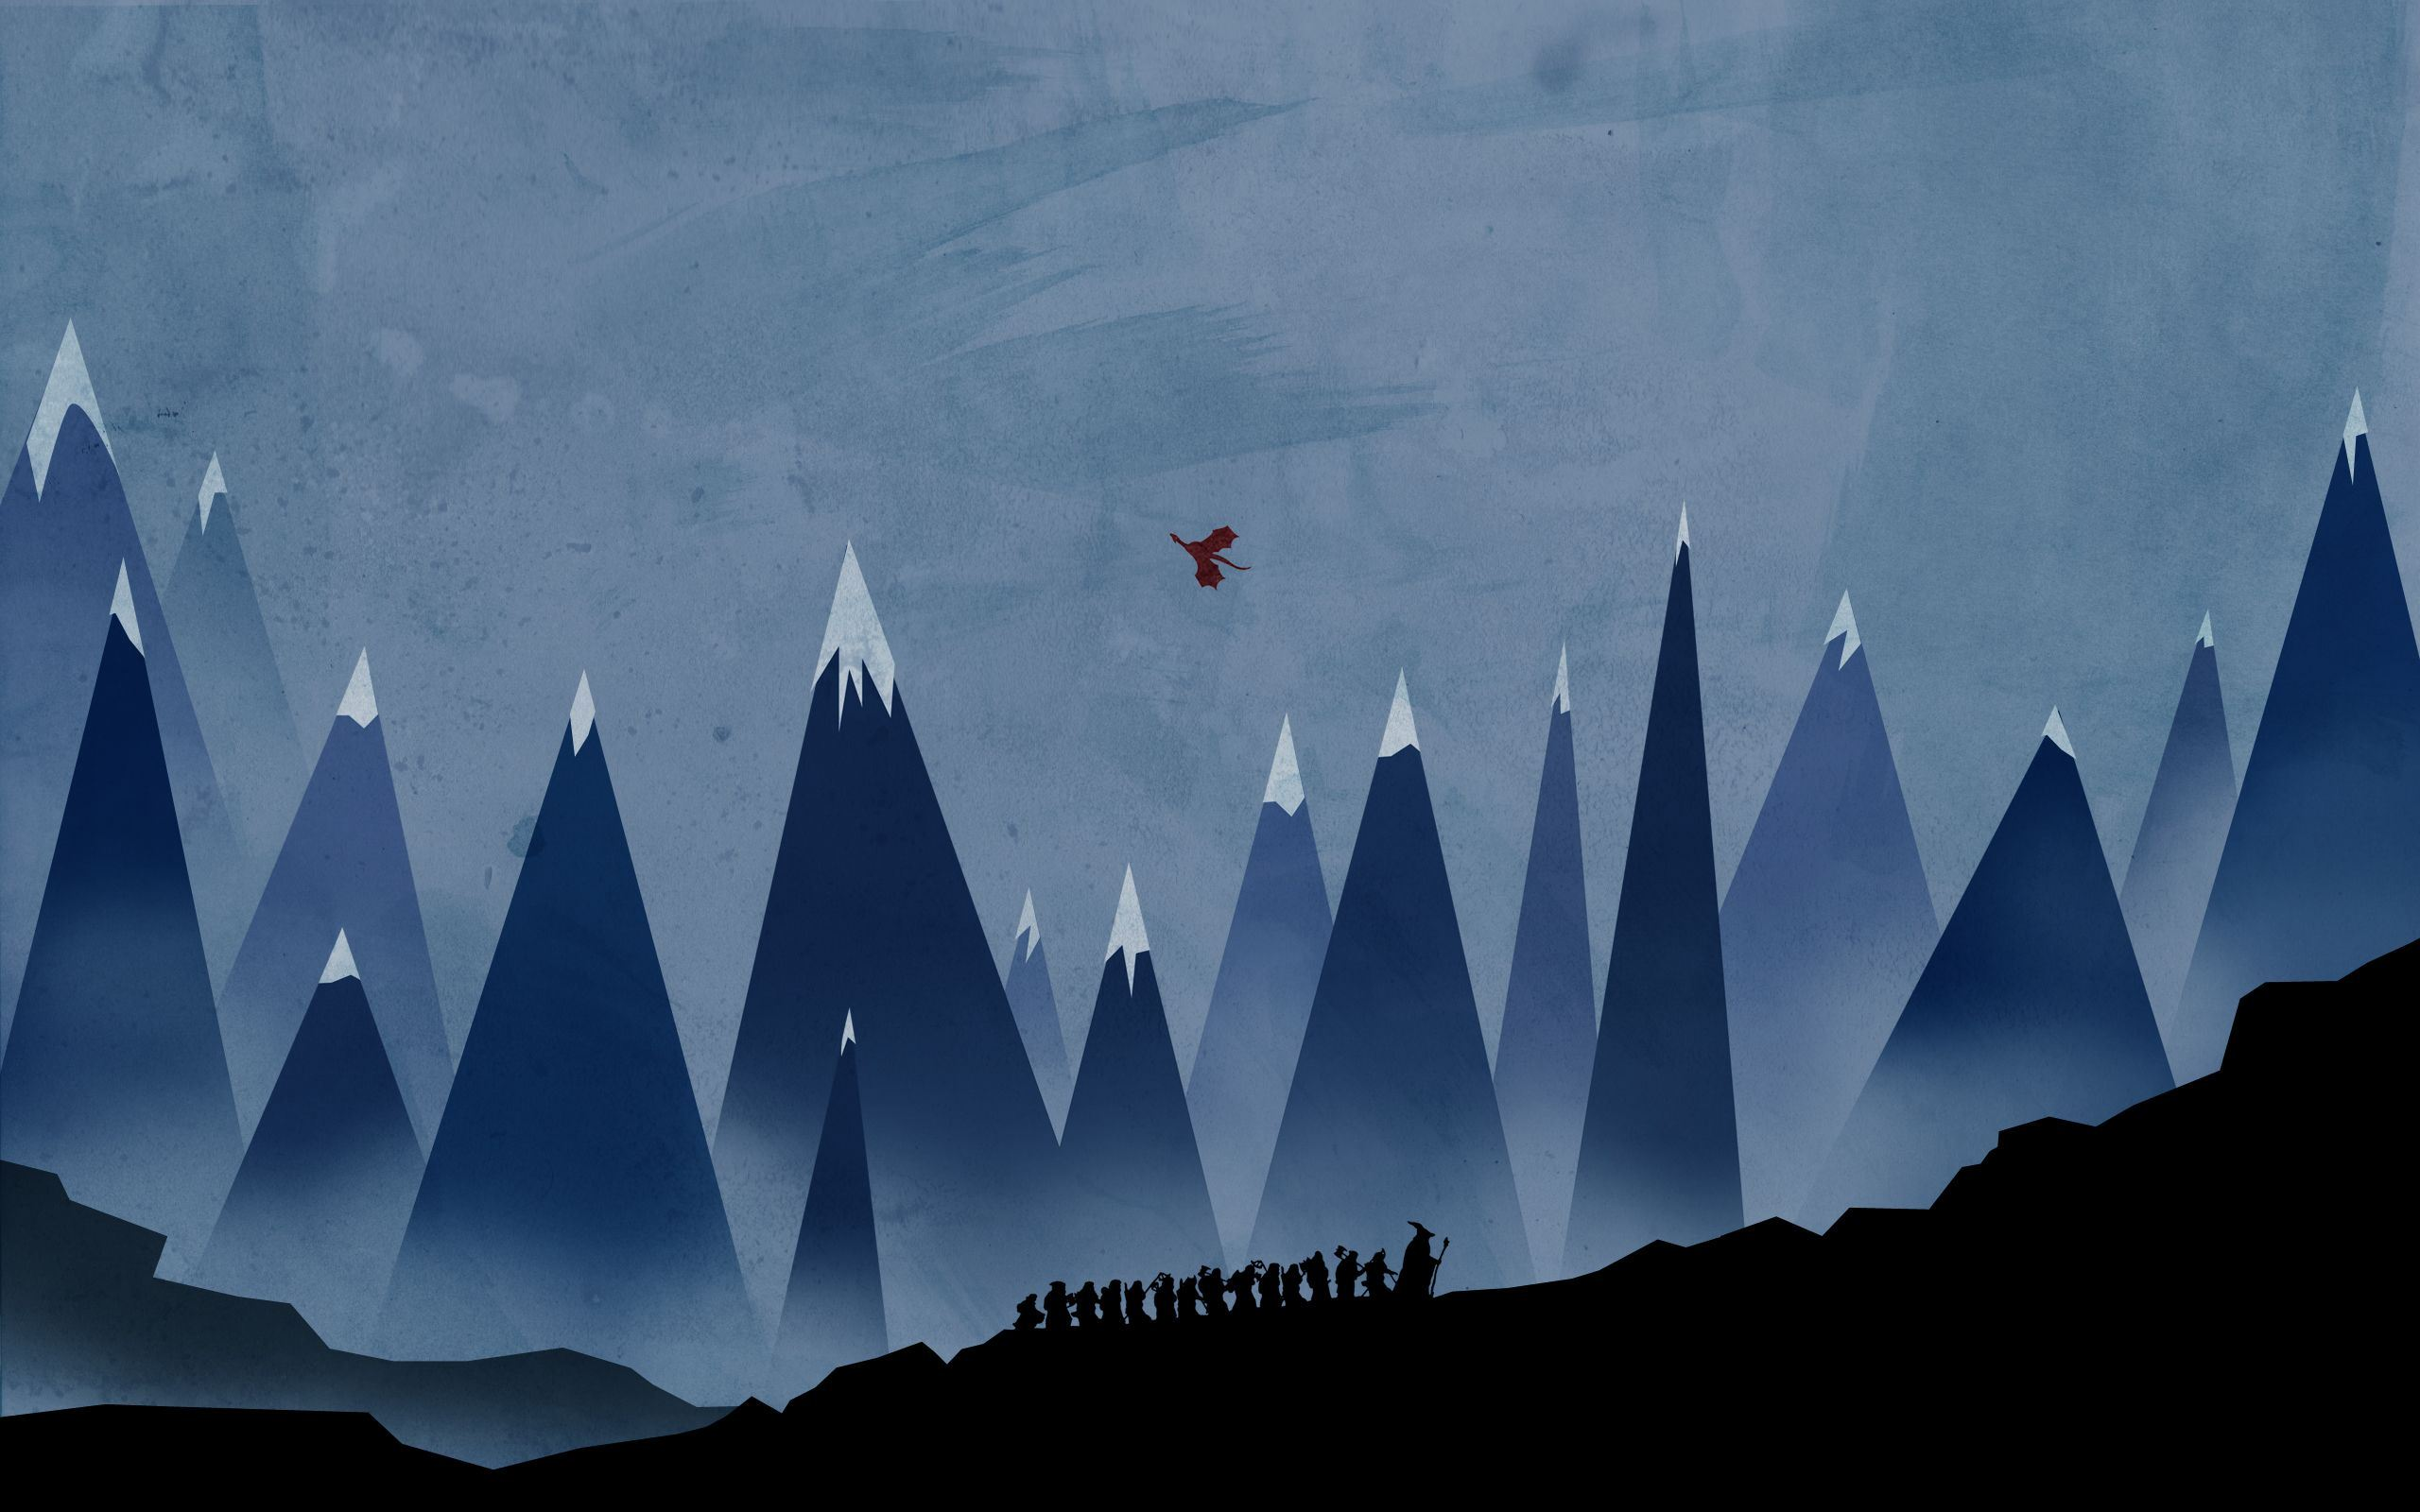 Lord of the Rings Artwork | Cool Wallpapers